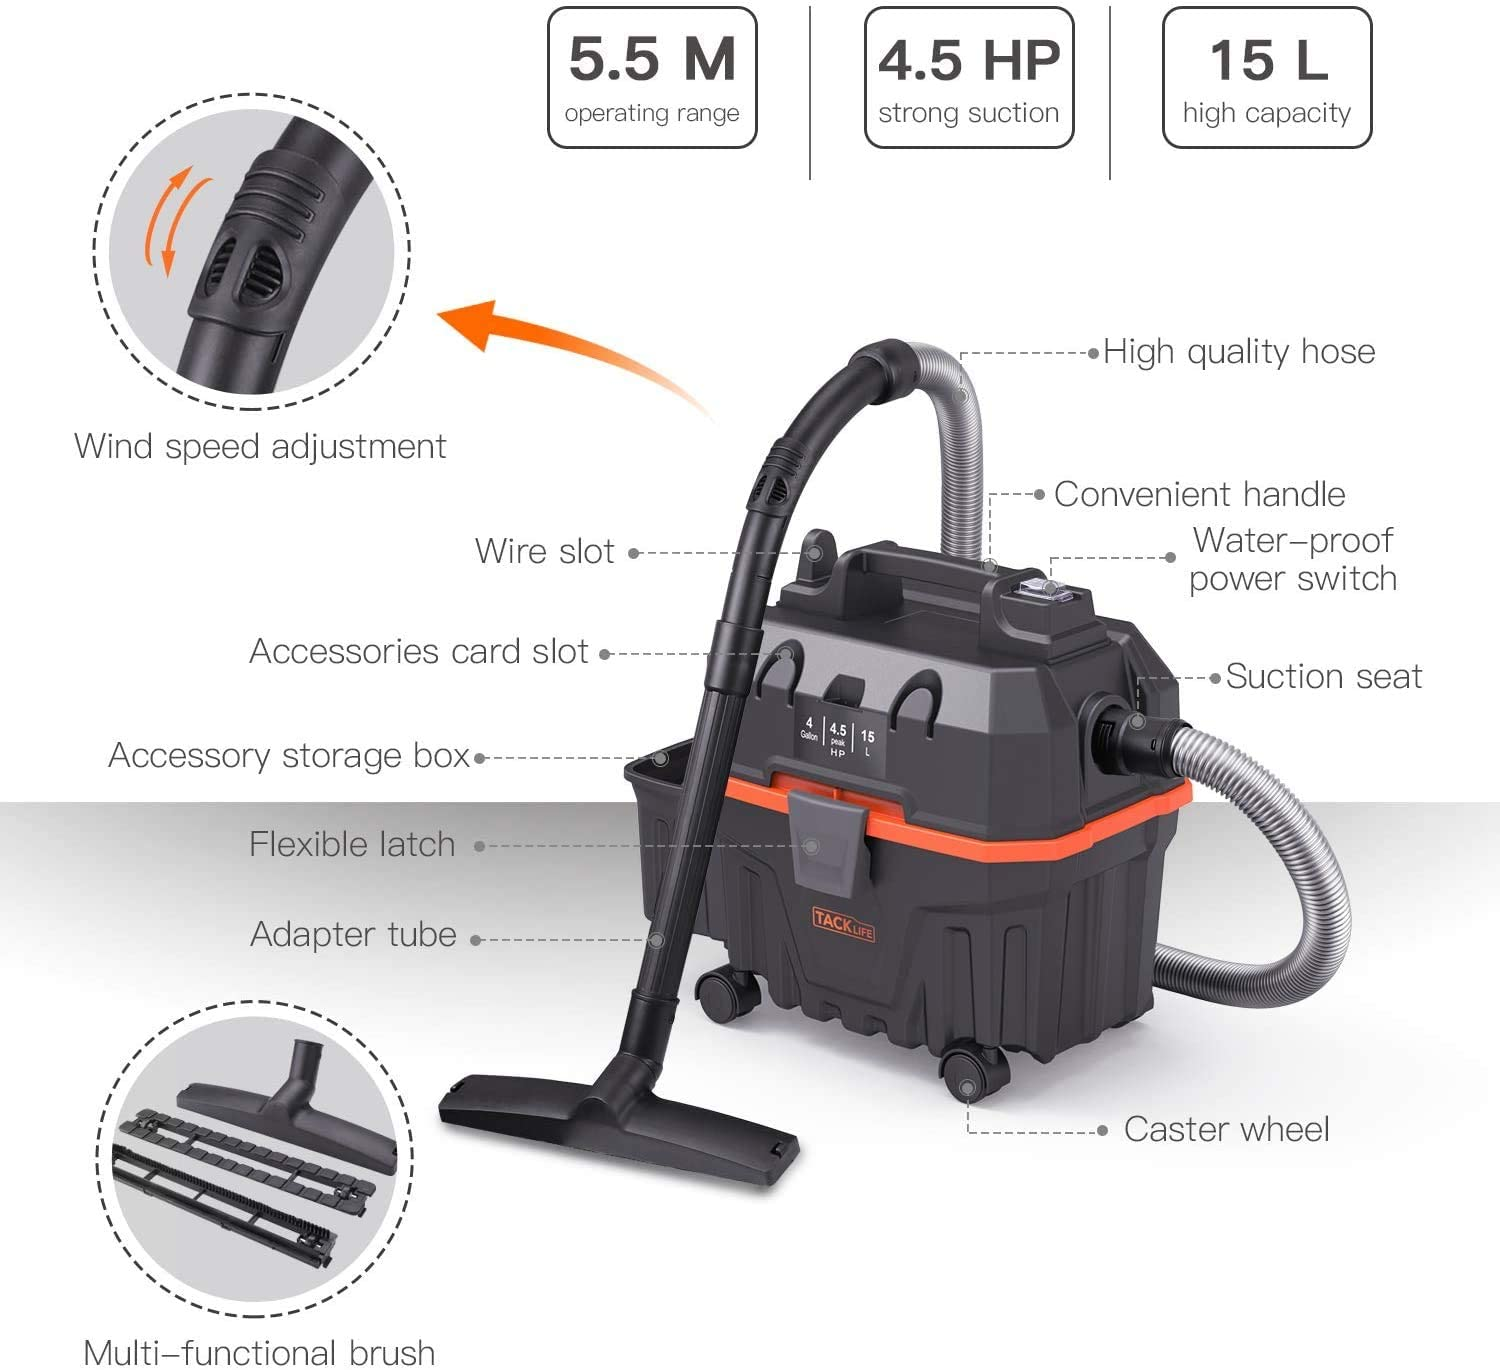 Shop Vac TACKLIFE Wet and Dry Vacuum Suitable for or Job Site,Garage,Basement,Van,Workshop,Vehicle 4.5 Peak Hp 4 Gallon Bagless Wet Suction//Dry Suction//Blowing 3 in 1 Function 1200W